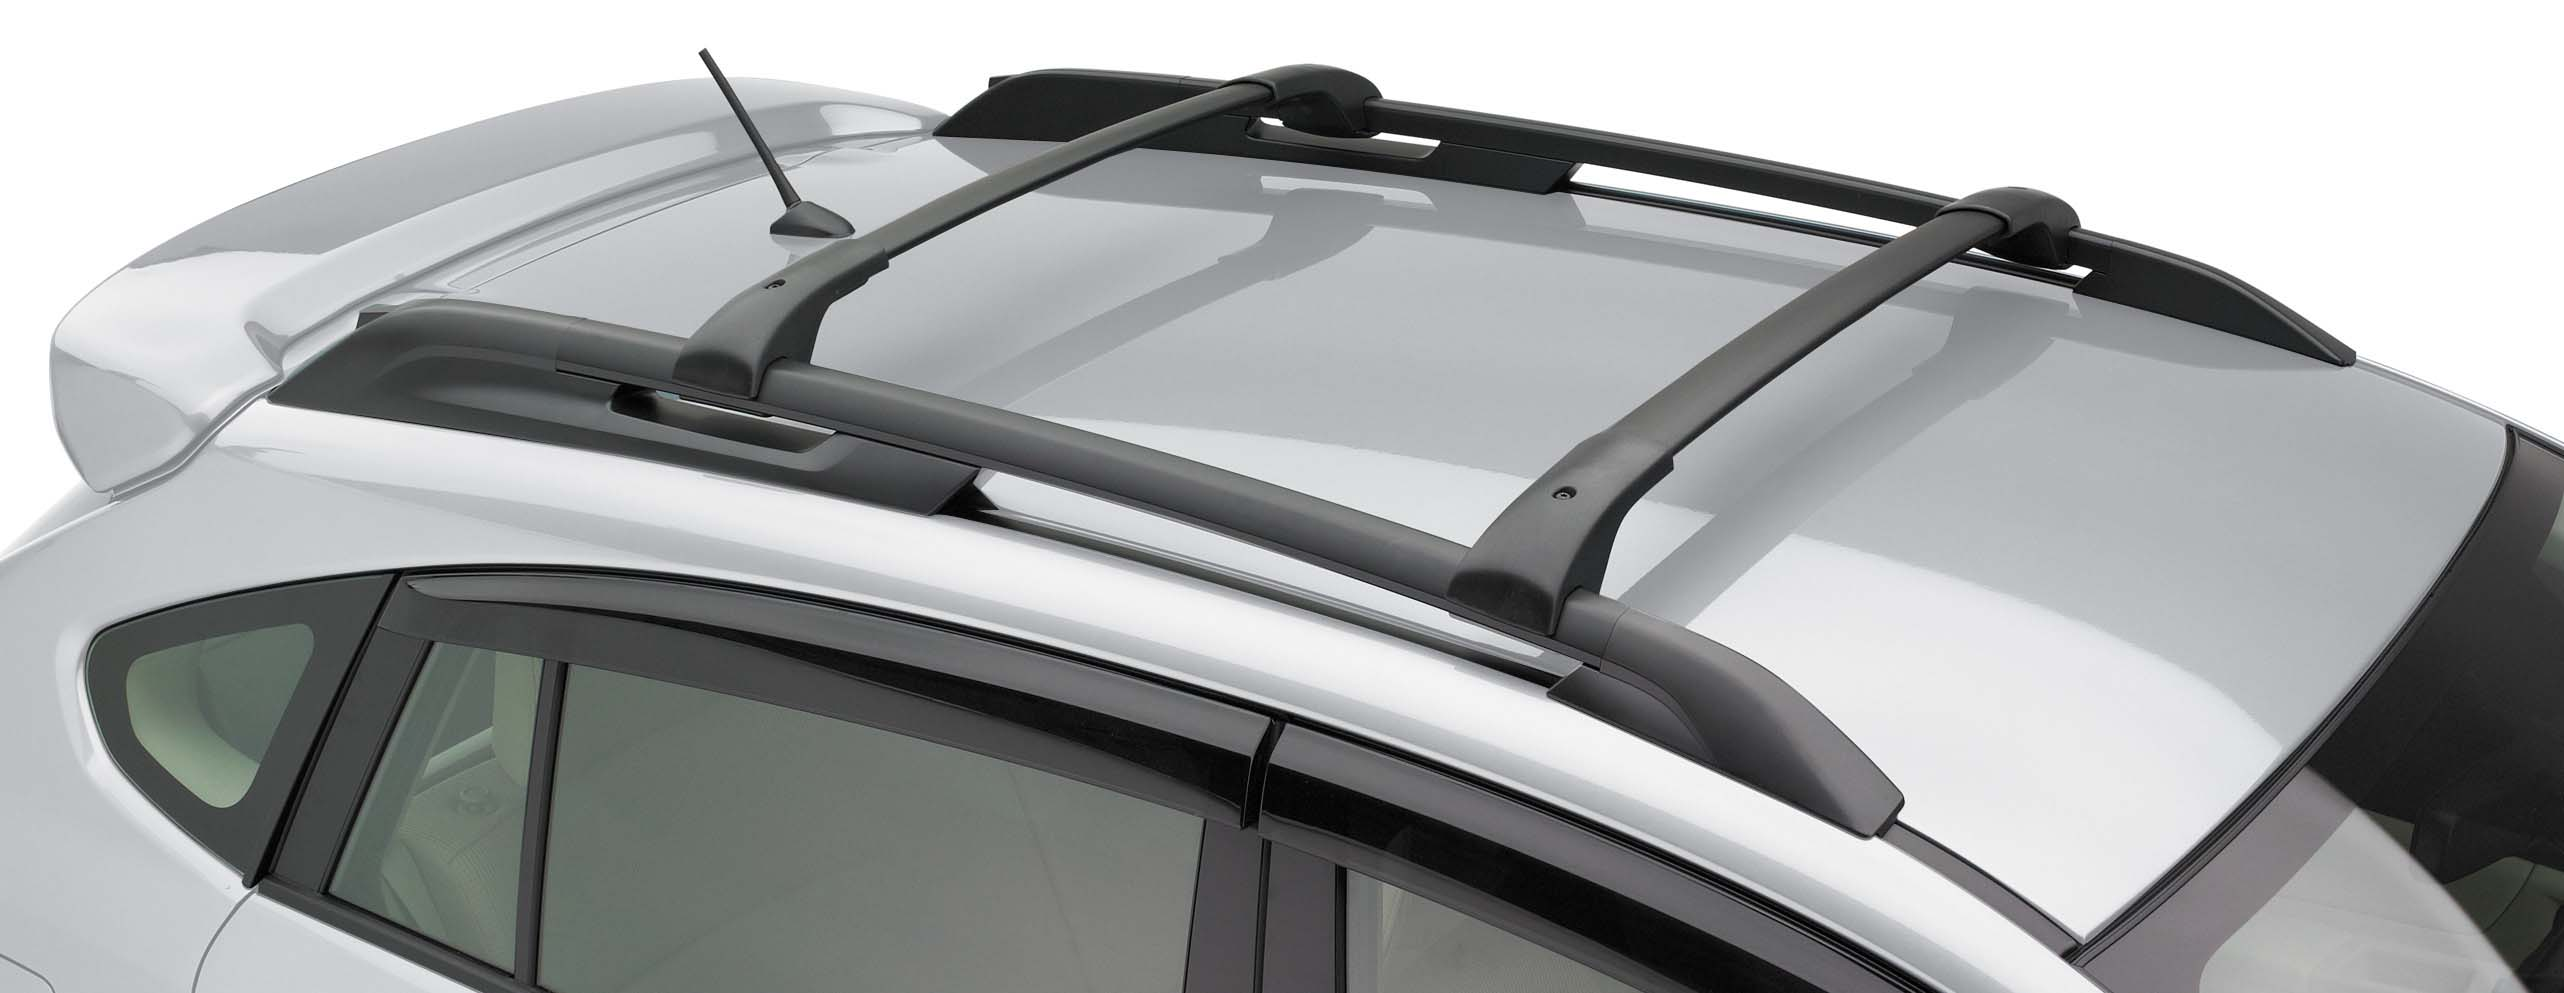 roof rack cross bars subaru forester Archives